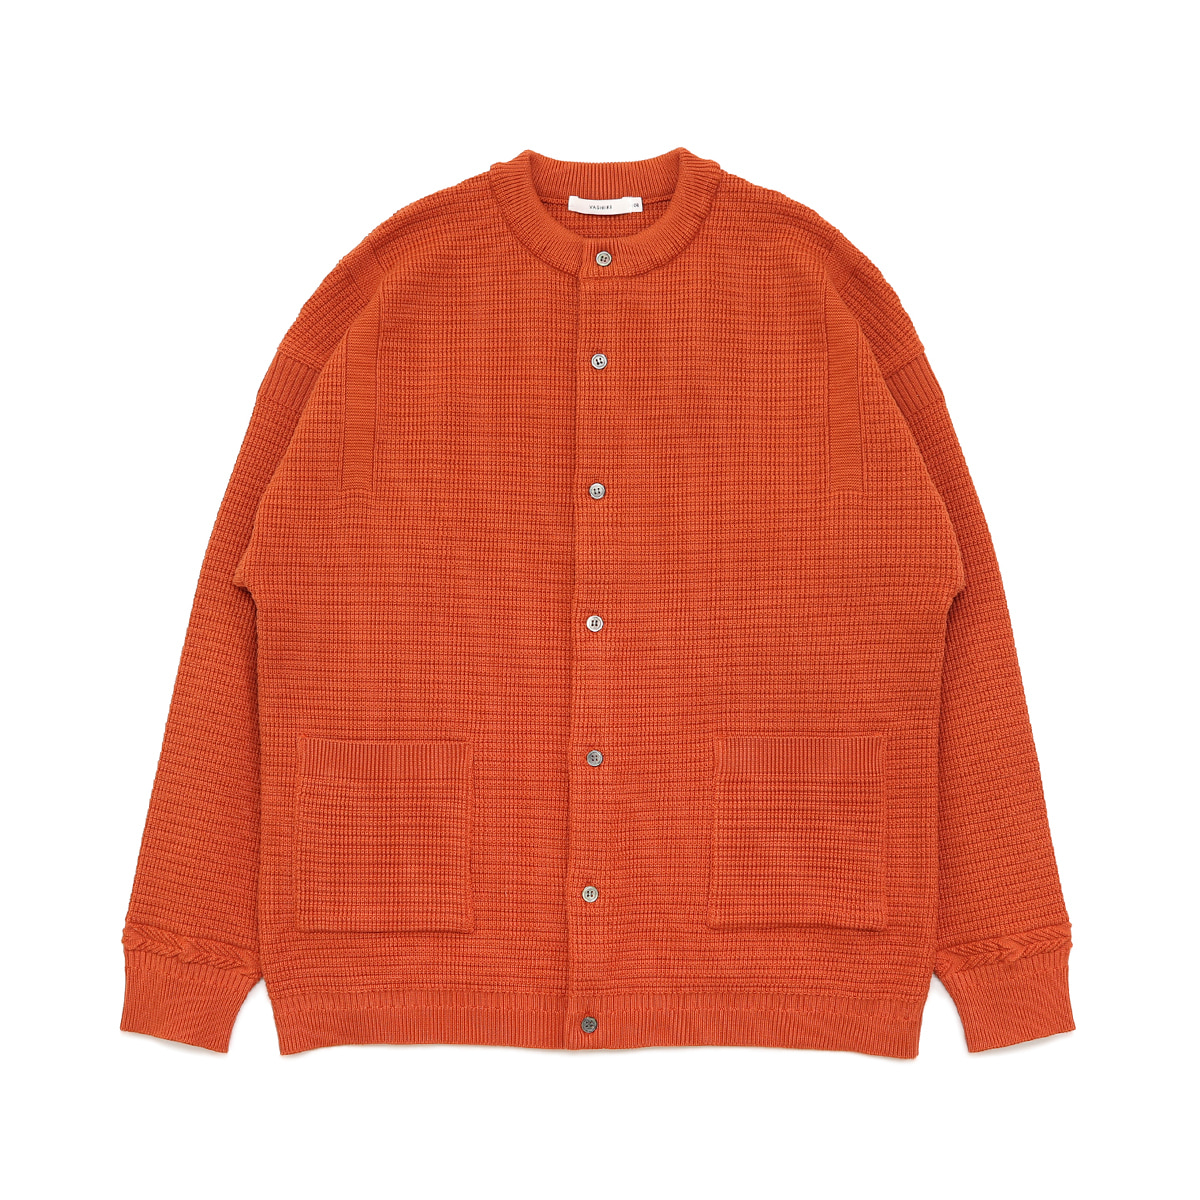 [YASHIKI] KONOGAKE CARDIGAN 'ORANGE'